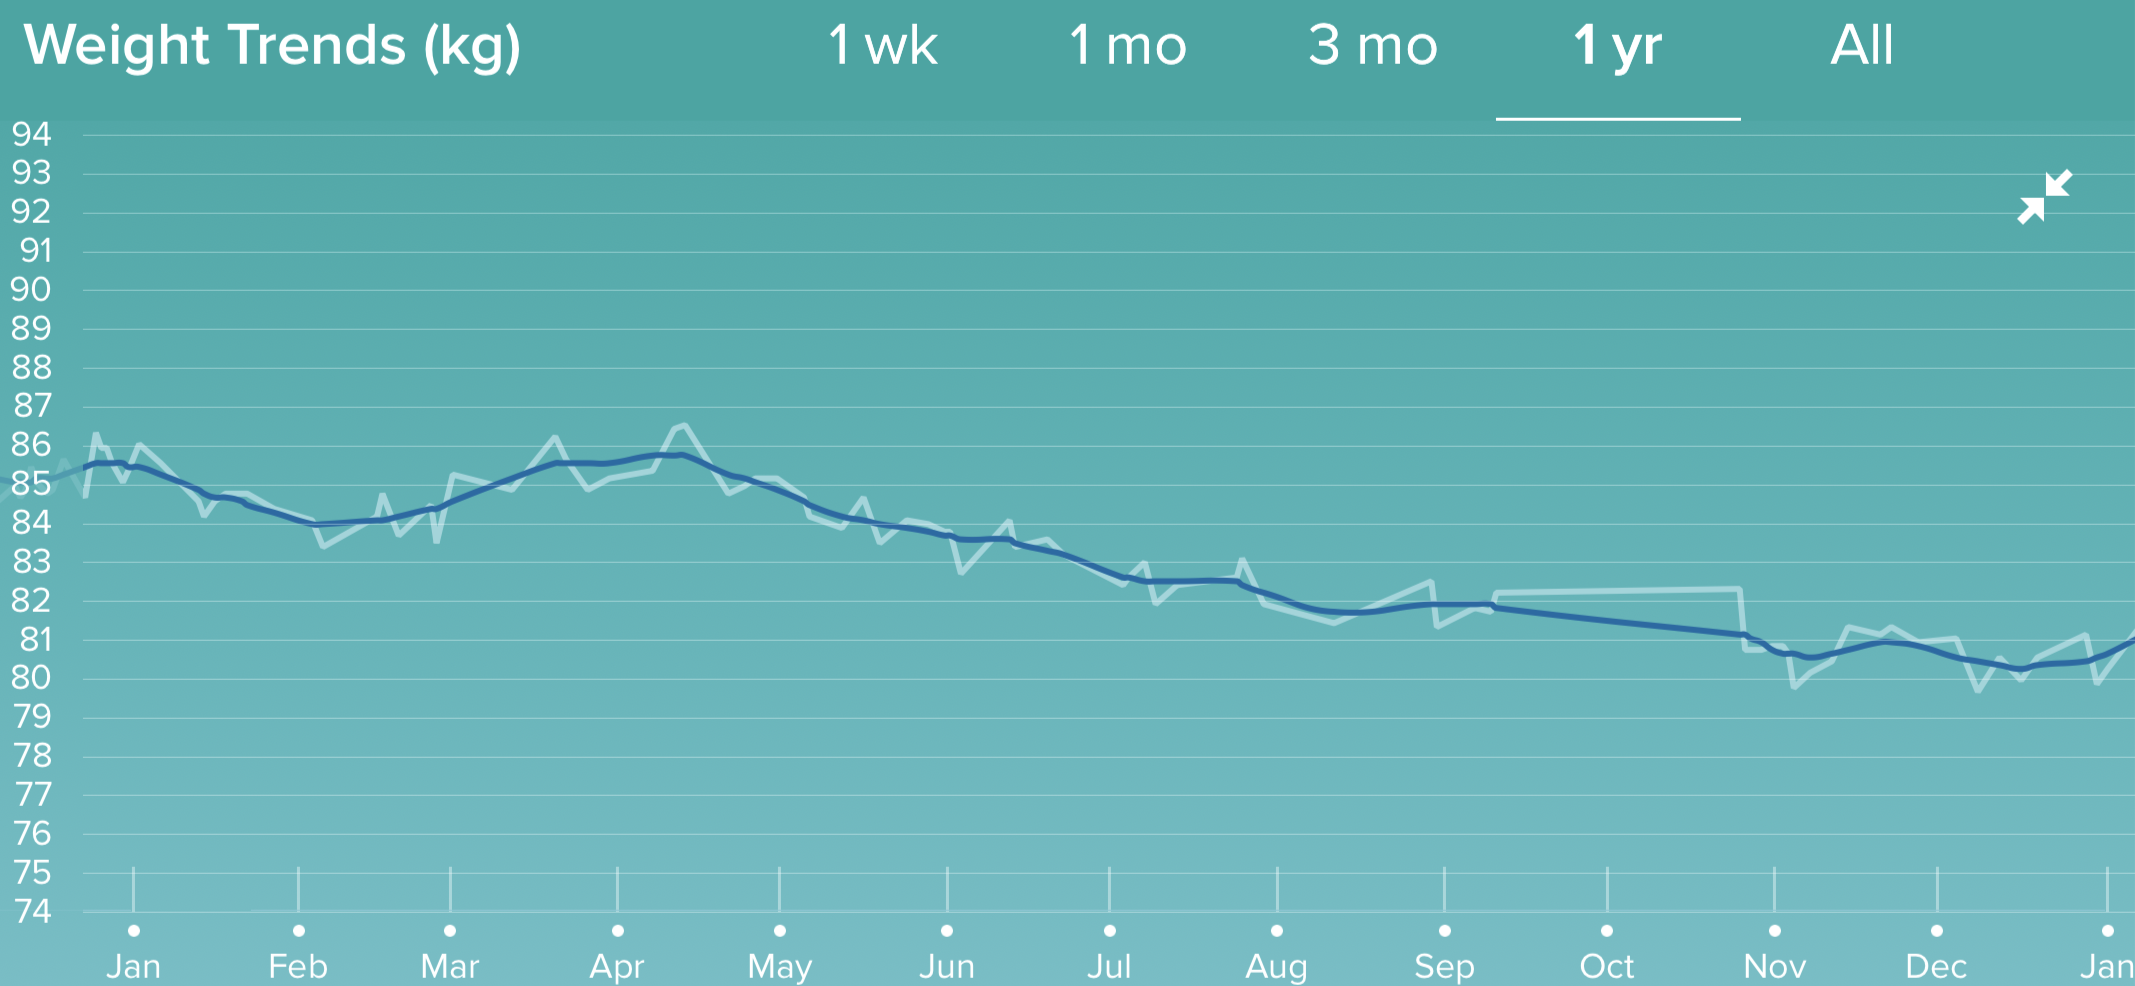 Weight trend graph